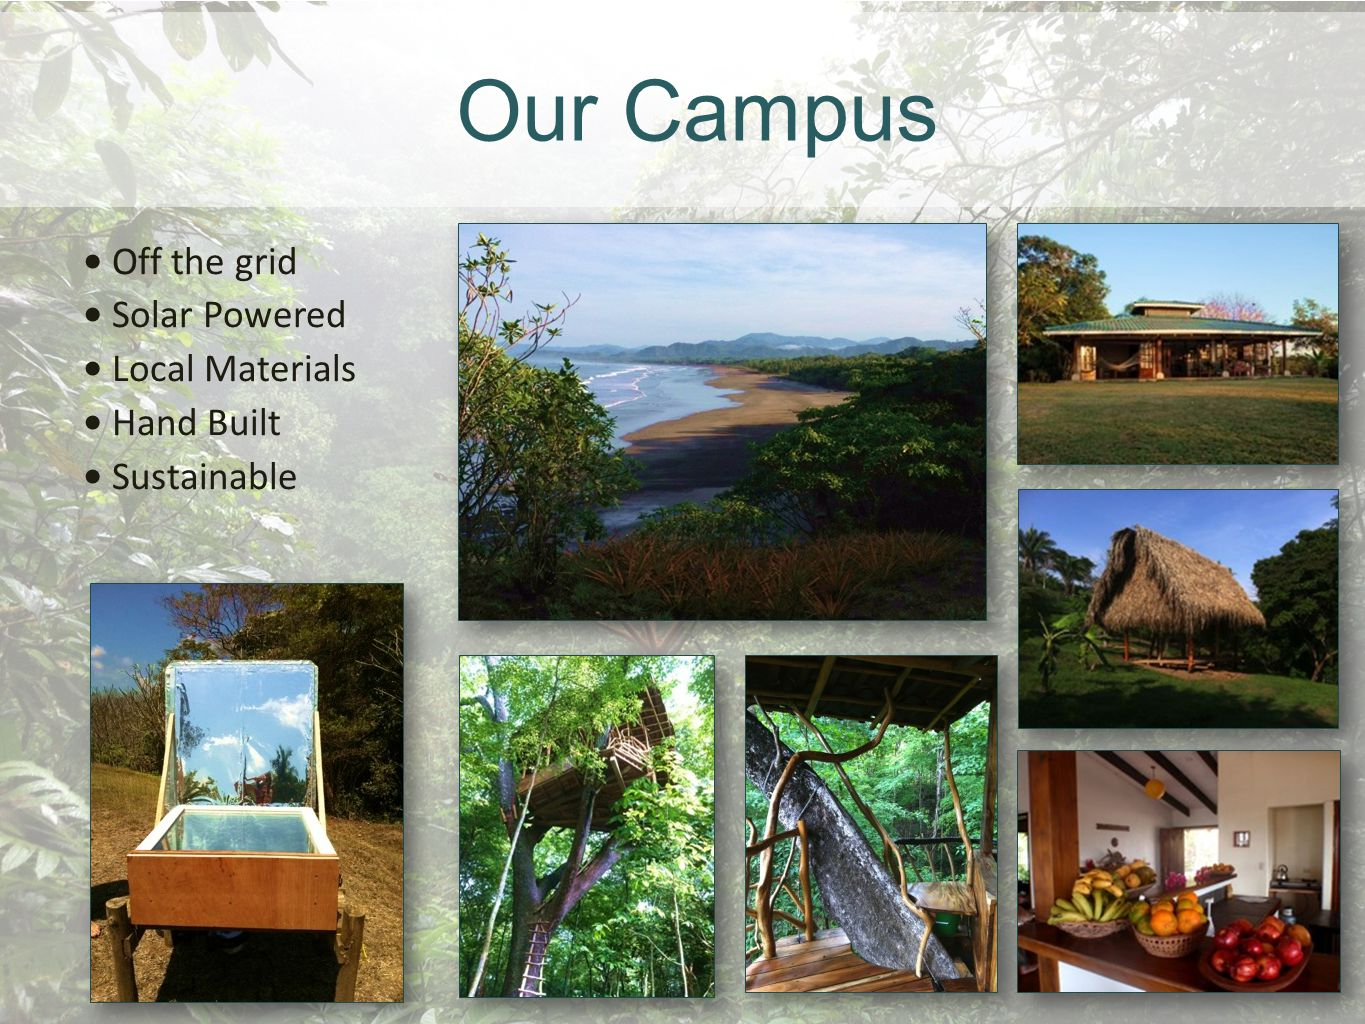 Our Campus Off the grid Solar Powered Local Materials Hand Built Sustainable